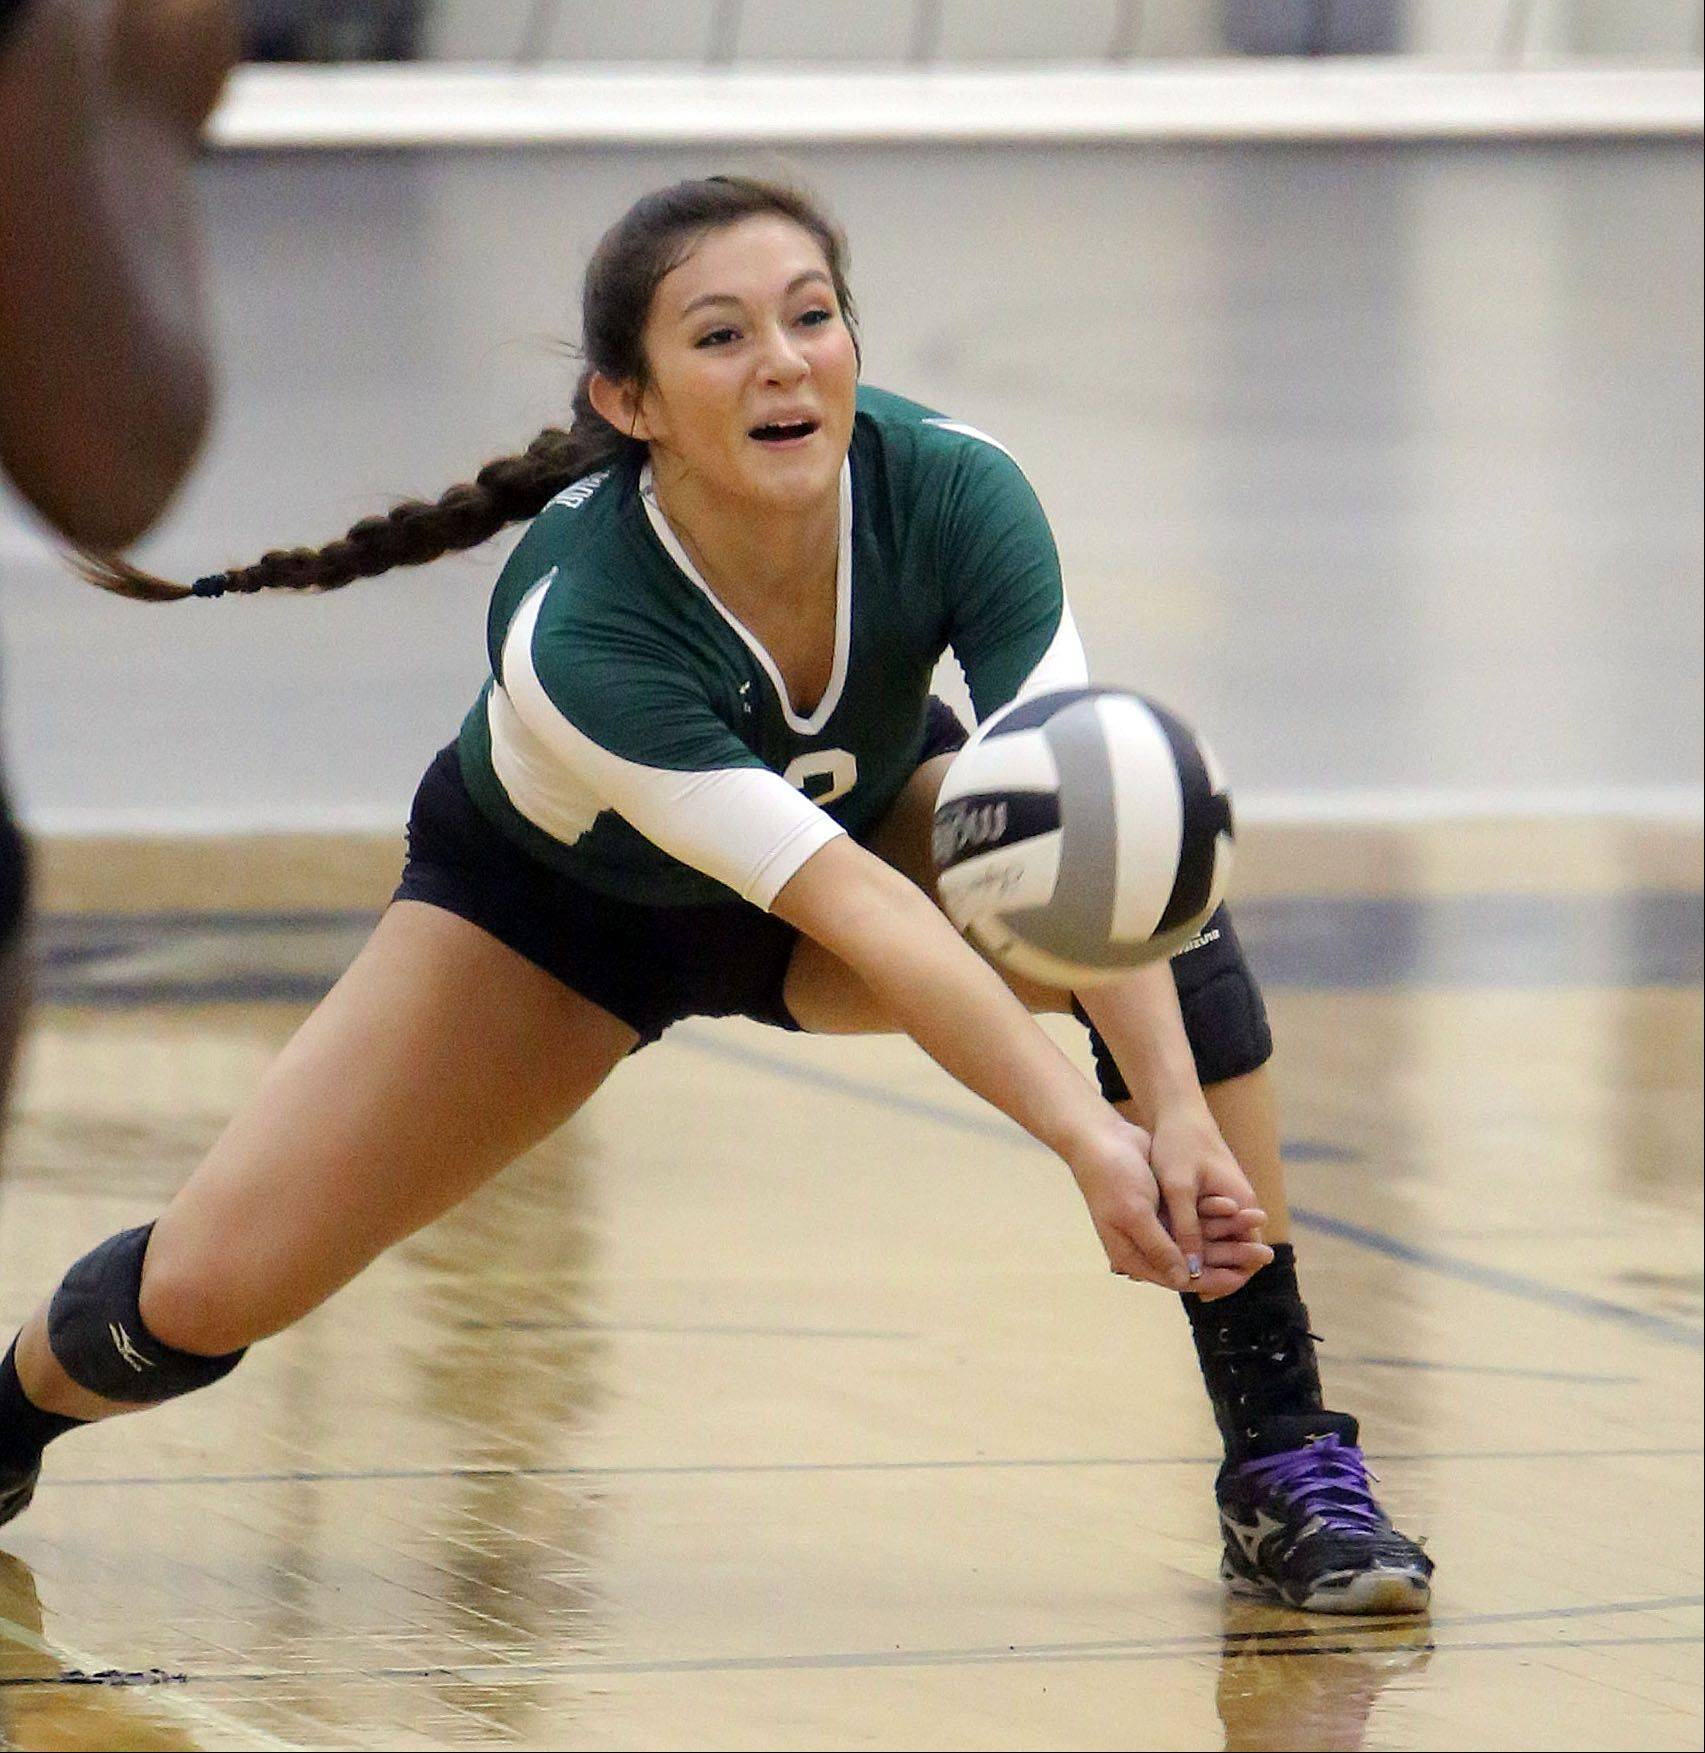 Grayslake Central's Gabi Casper digs out a serve during Tuesday volleyball in Grayslake.